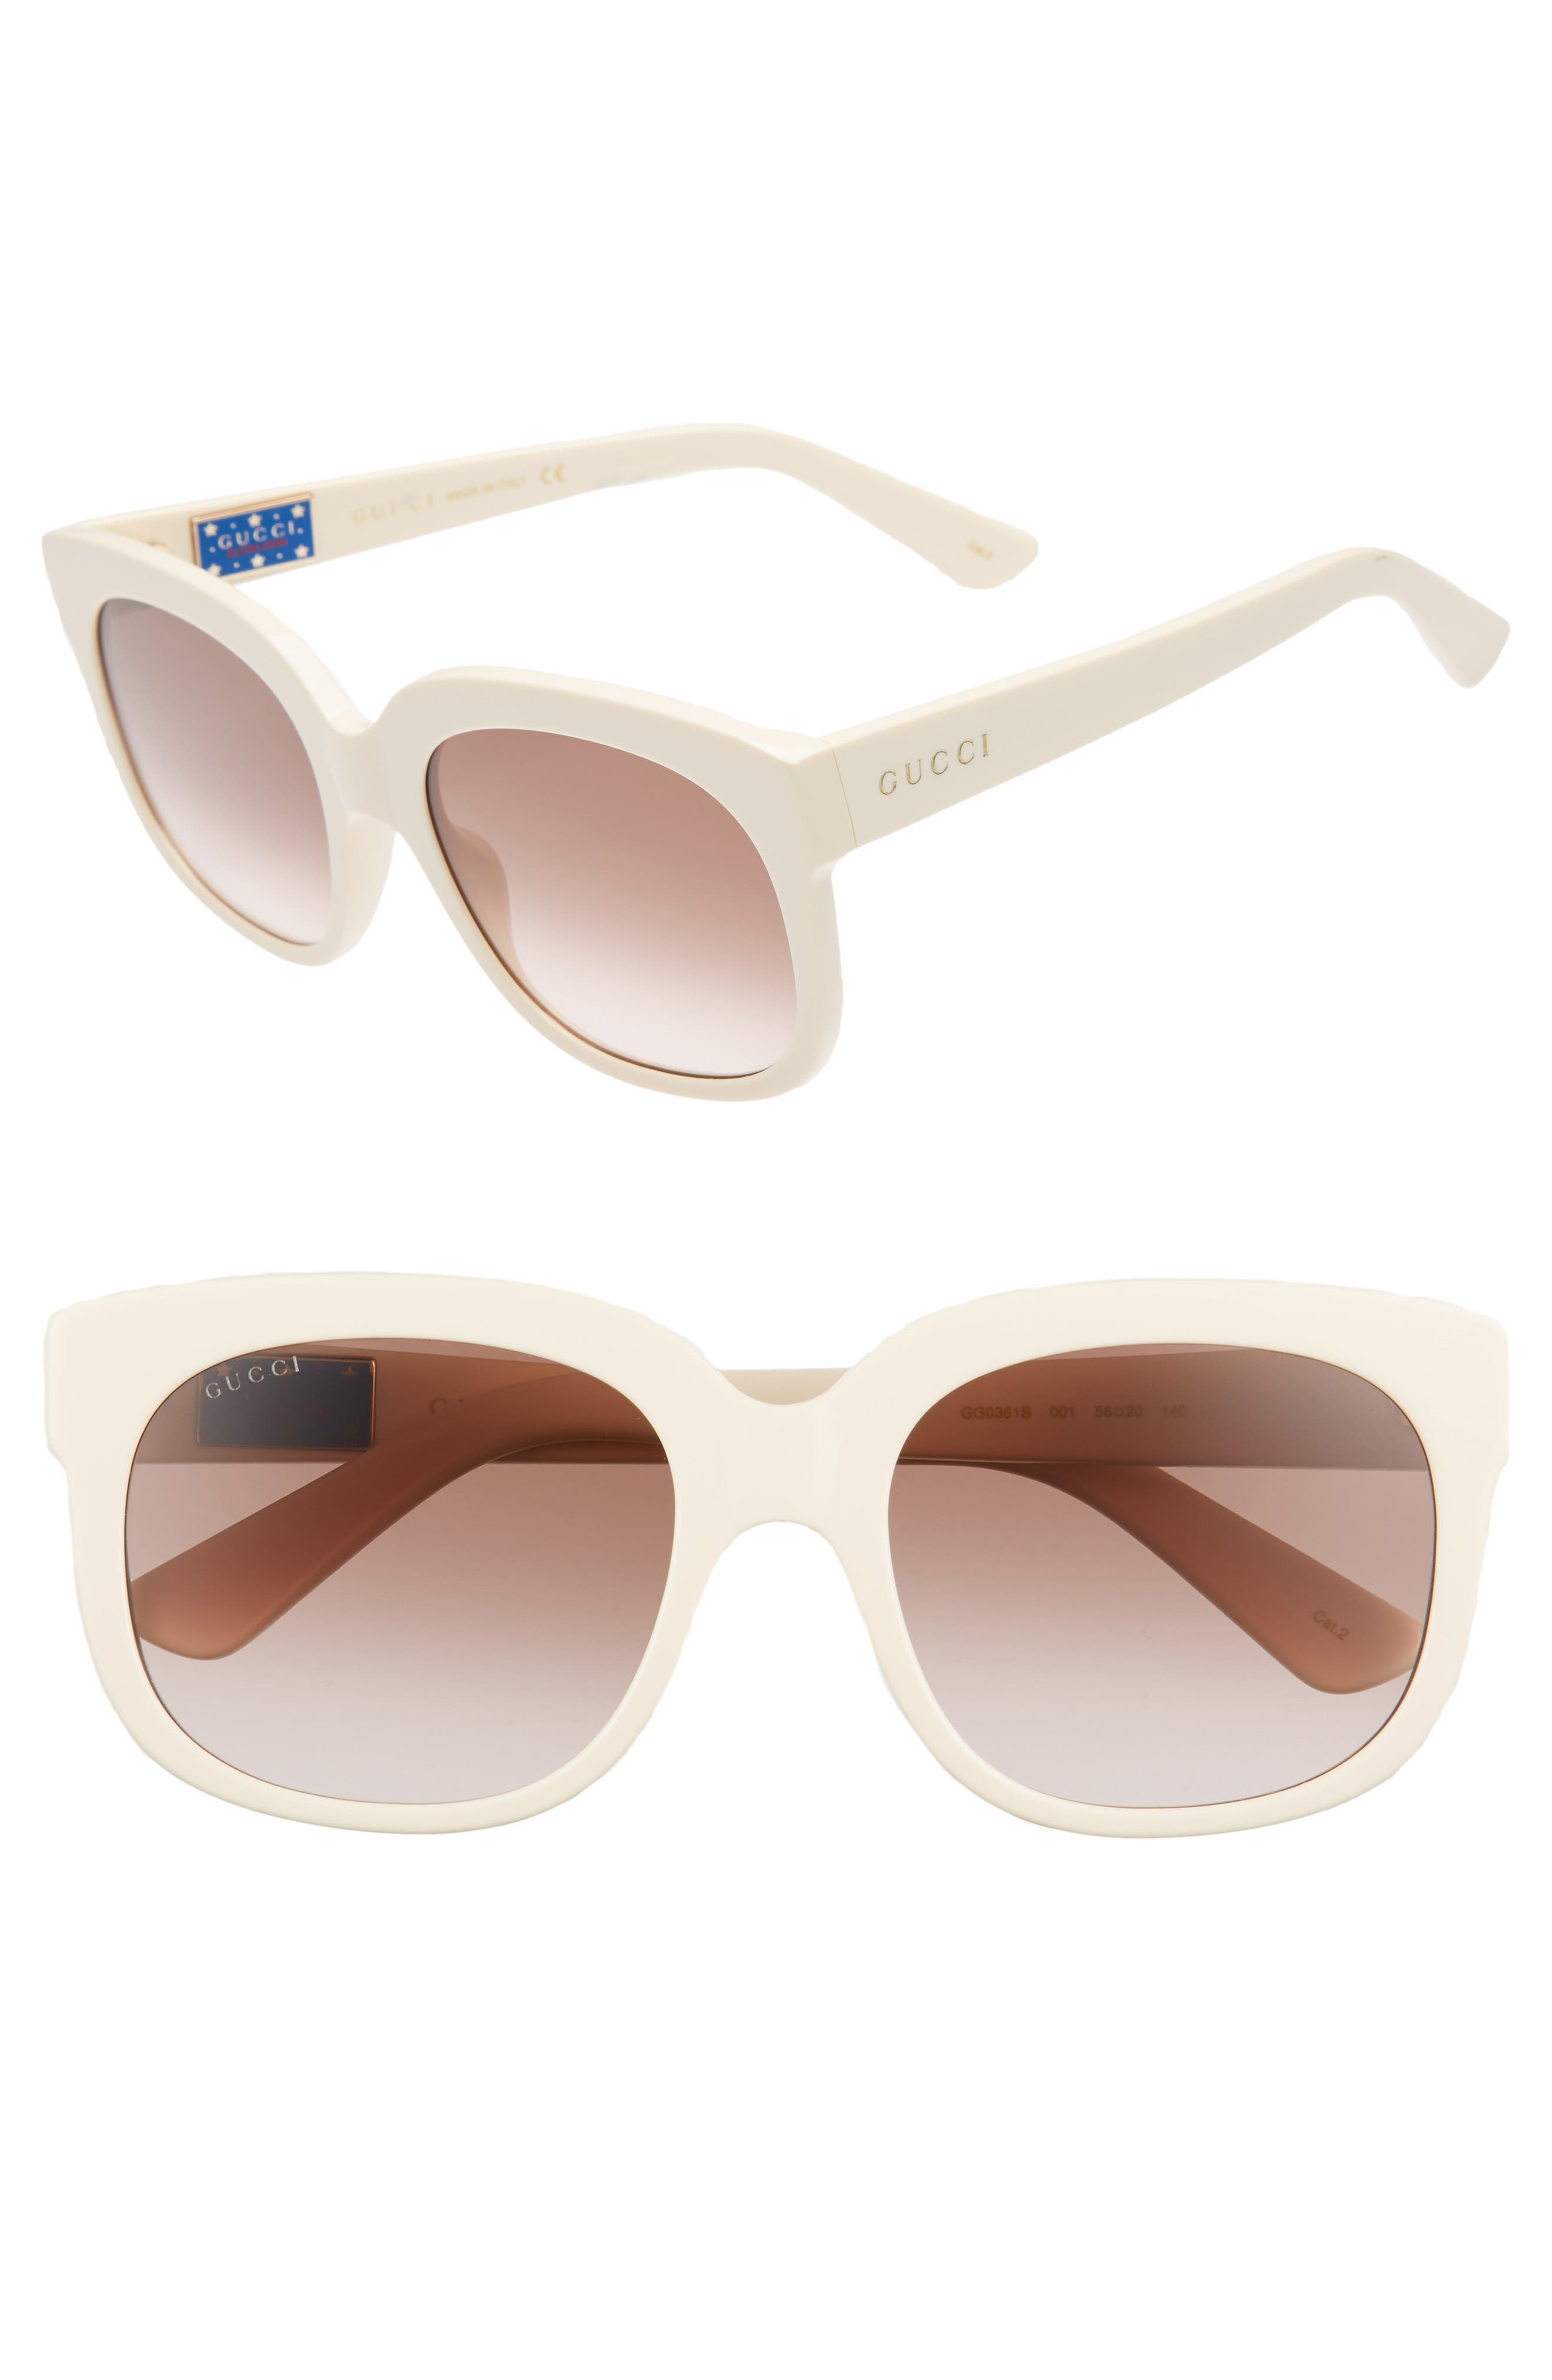 56mm Gradient Cat Eye Sunglasses,                         Main,                         color, IVORY/ BROWN/ PINK